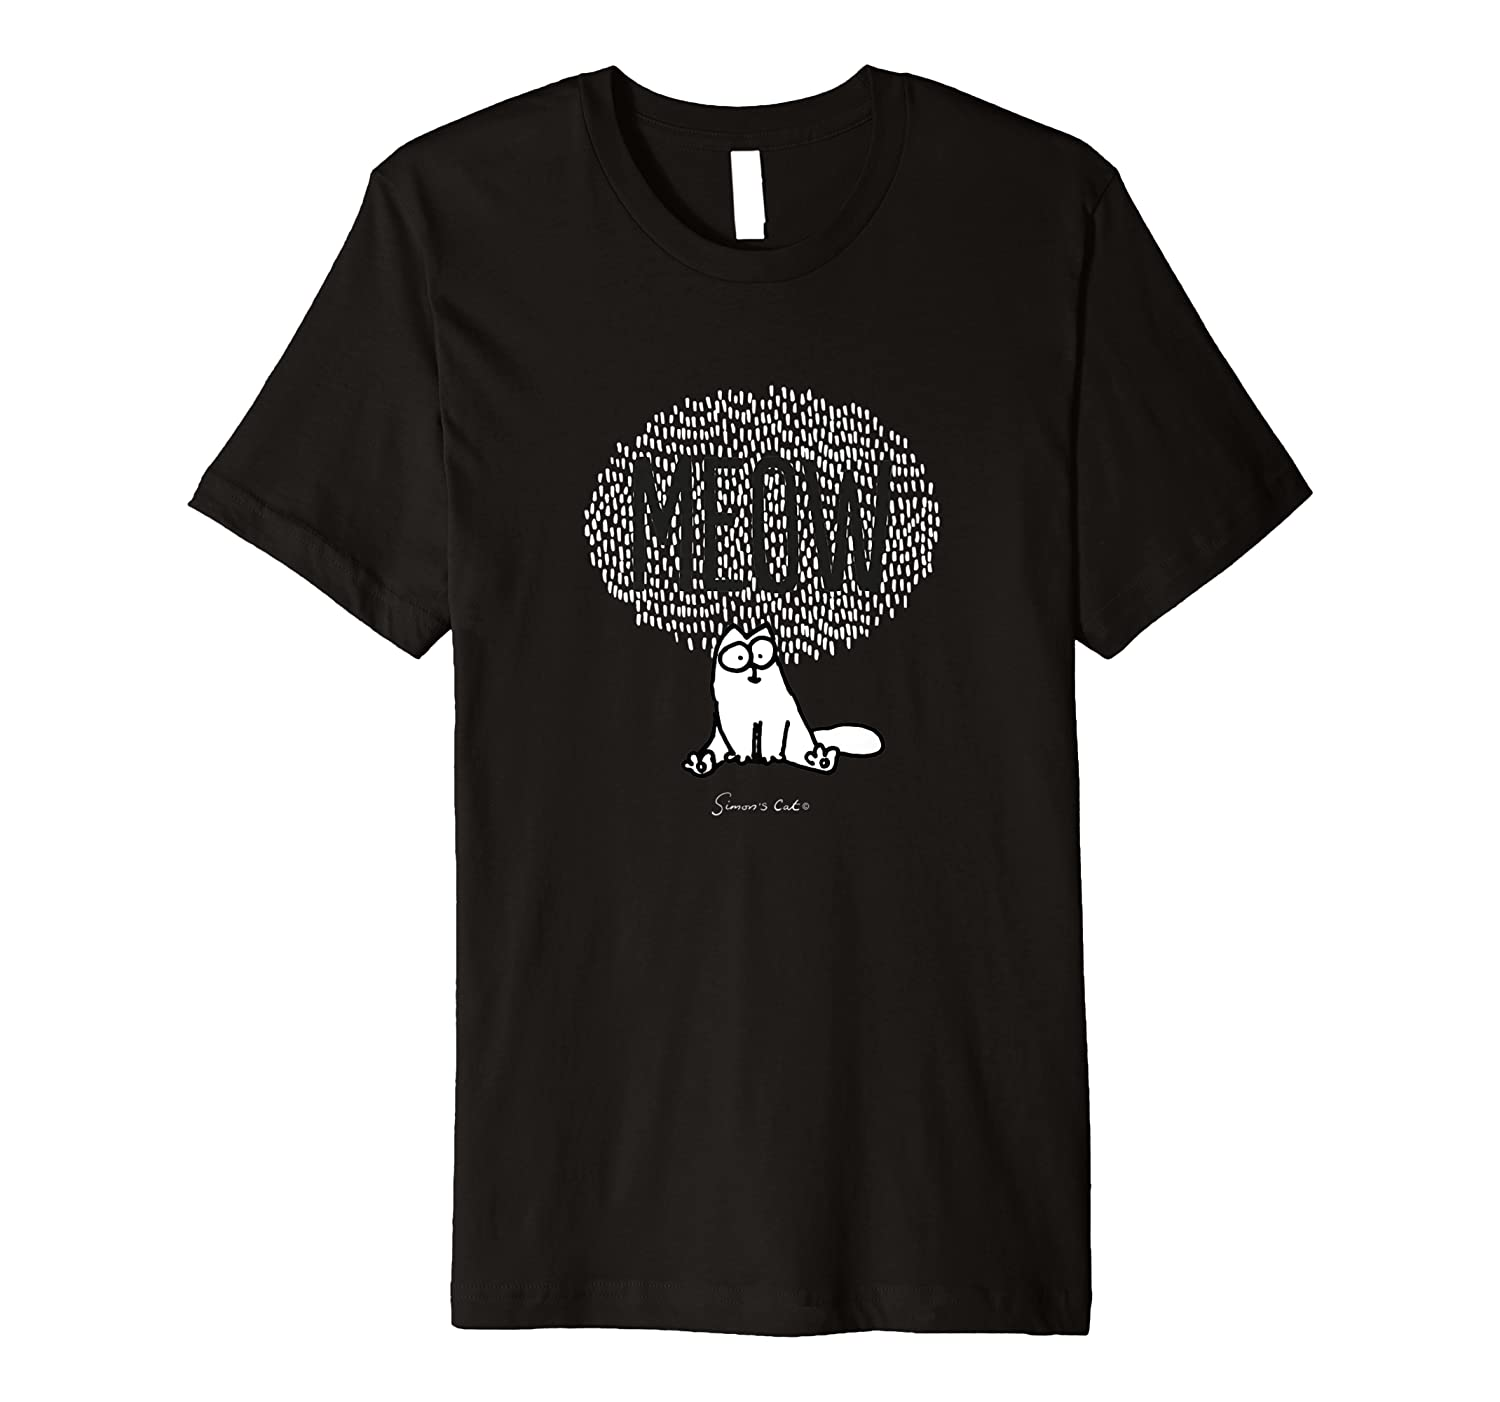 Simon's Cat: Meow T-shirt